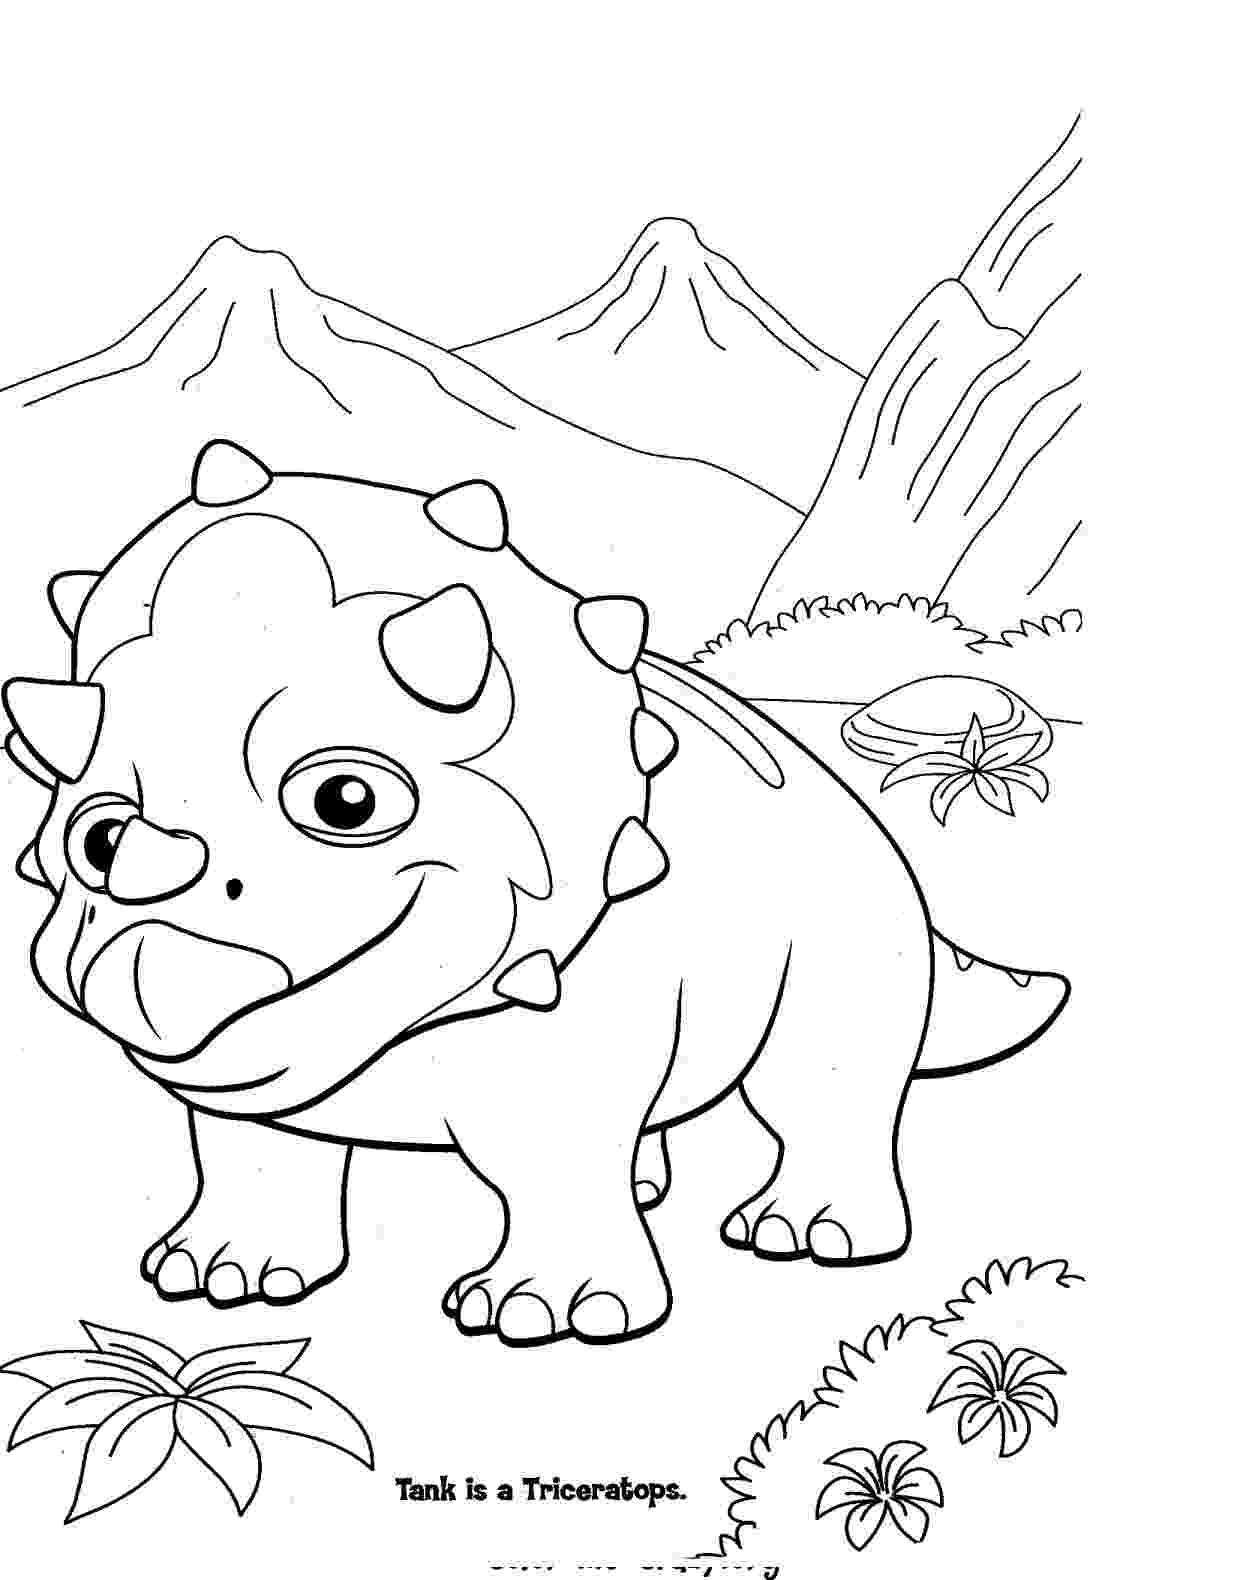 dinosaur pictures to color colormecrazyorg dinosaur train coloring pages to color pictures dinosaur